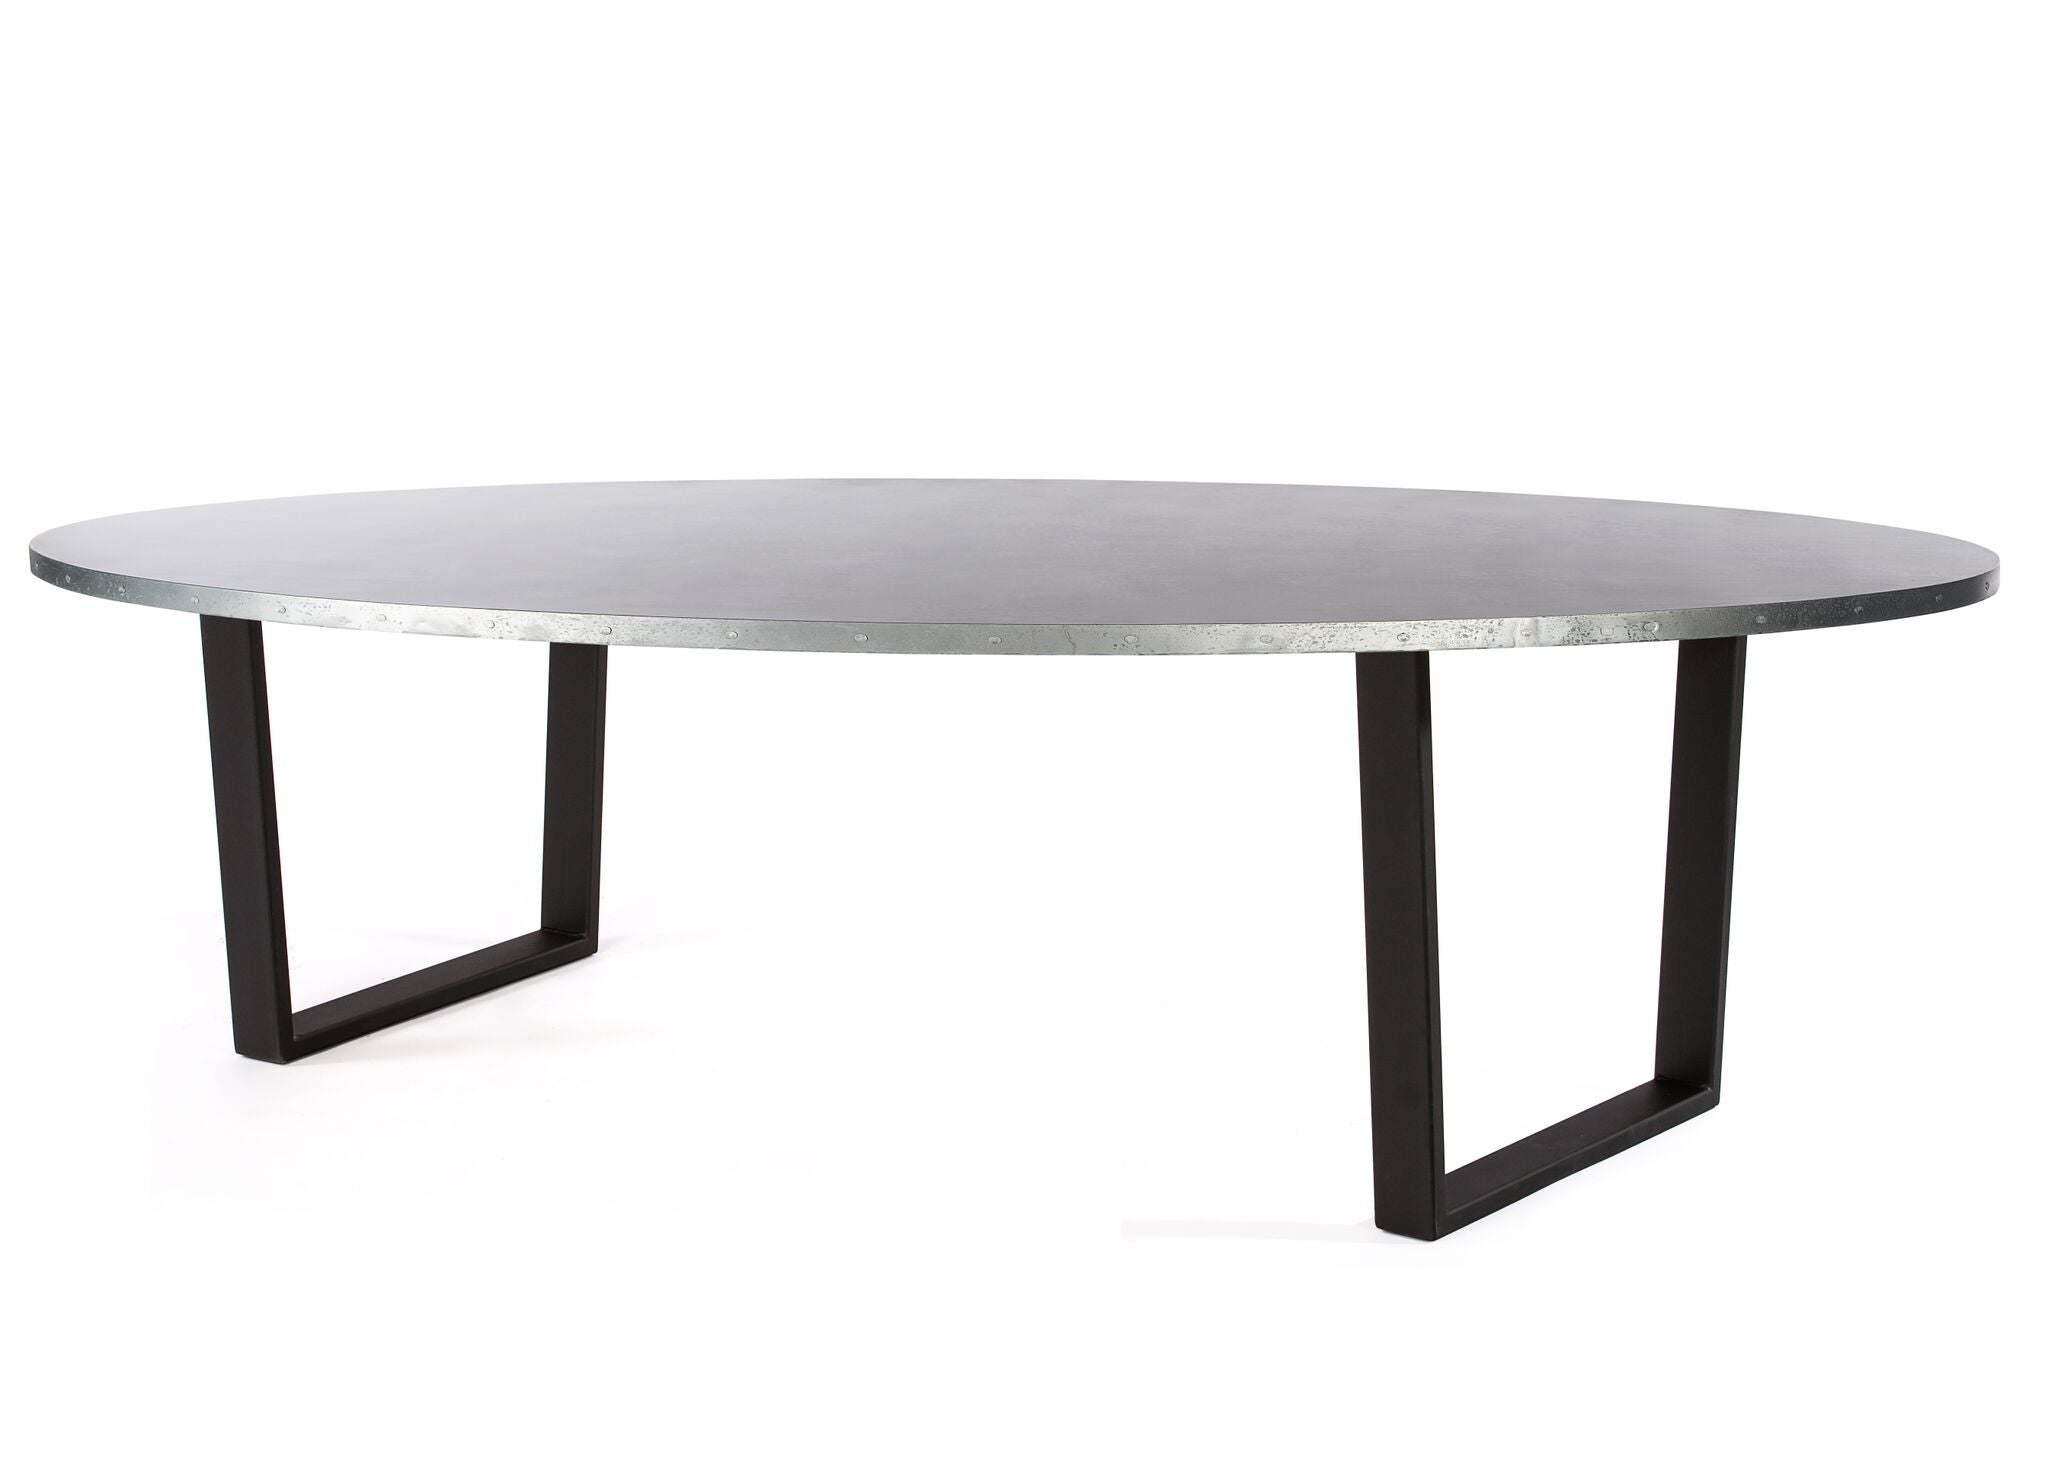 "Zinc Oval Tables | Trenton Table | CLASSIC | Natural Steel | 72""L 39""W 30""H 